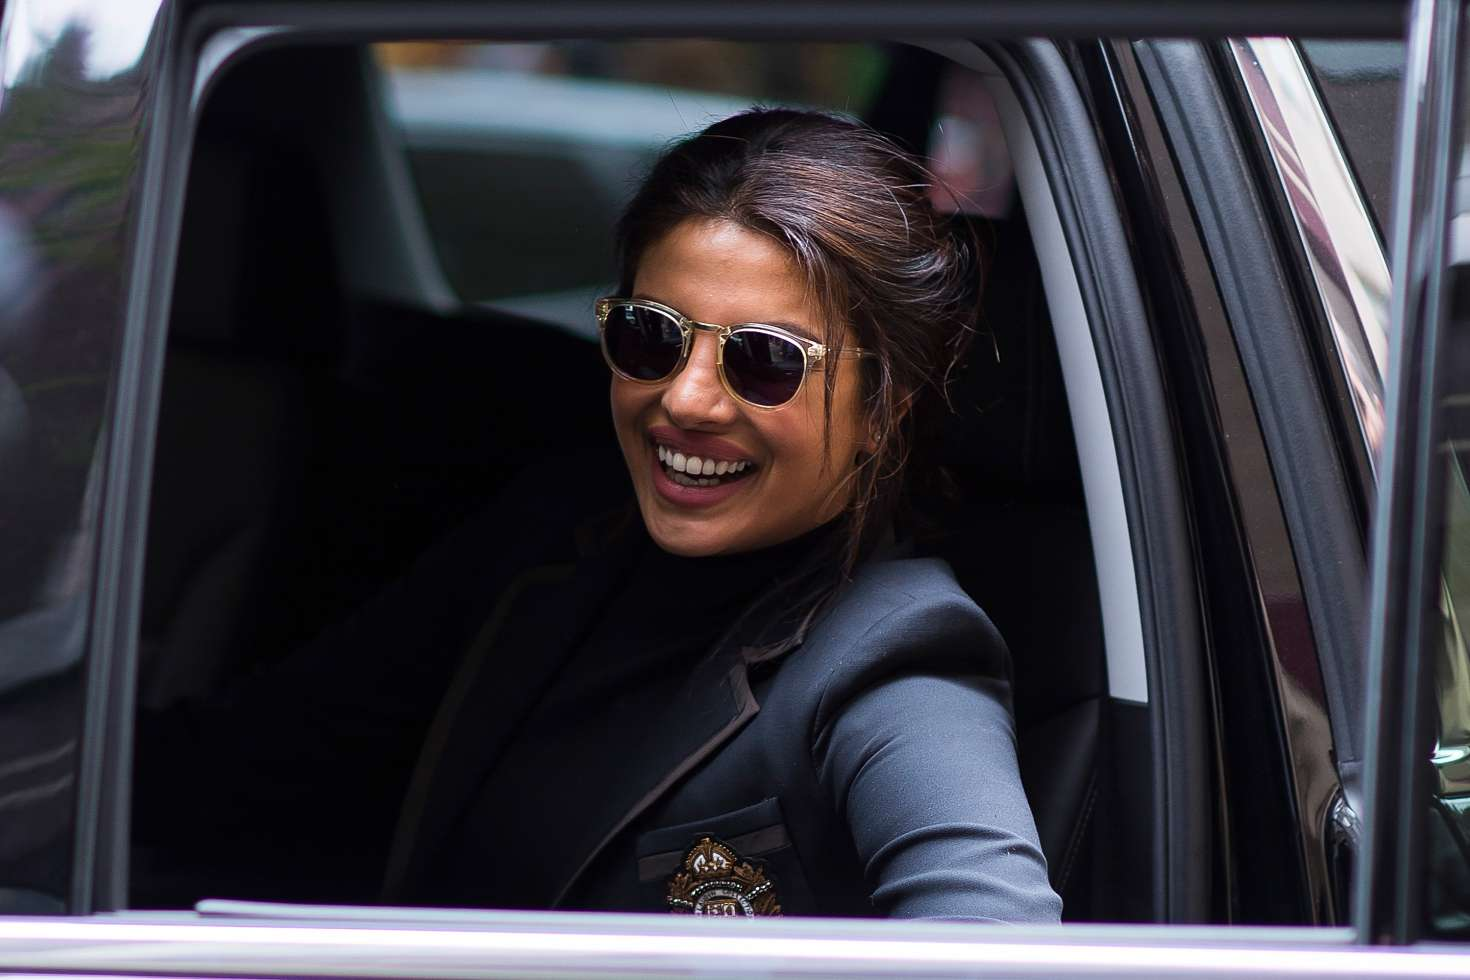 Priyanka Chopra – Spotted while out in New York City   Priyanka-Chopra:-Spotted-while-out-in-New-York-City-07